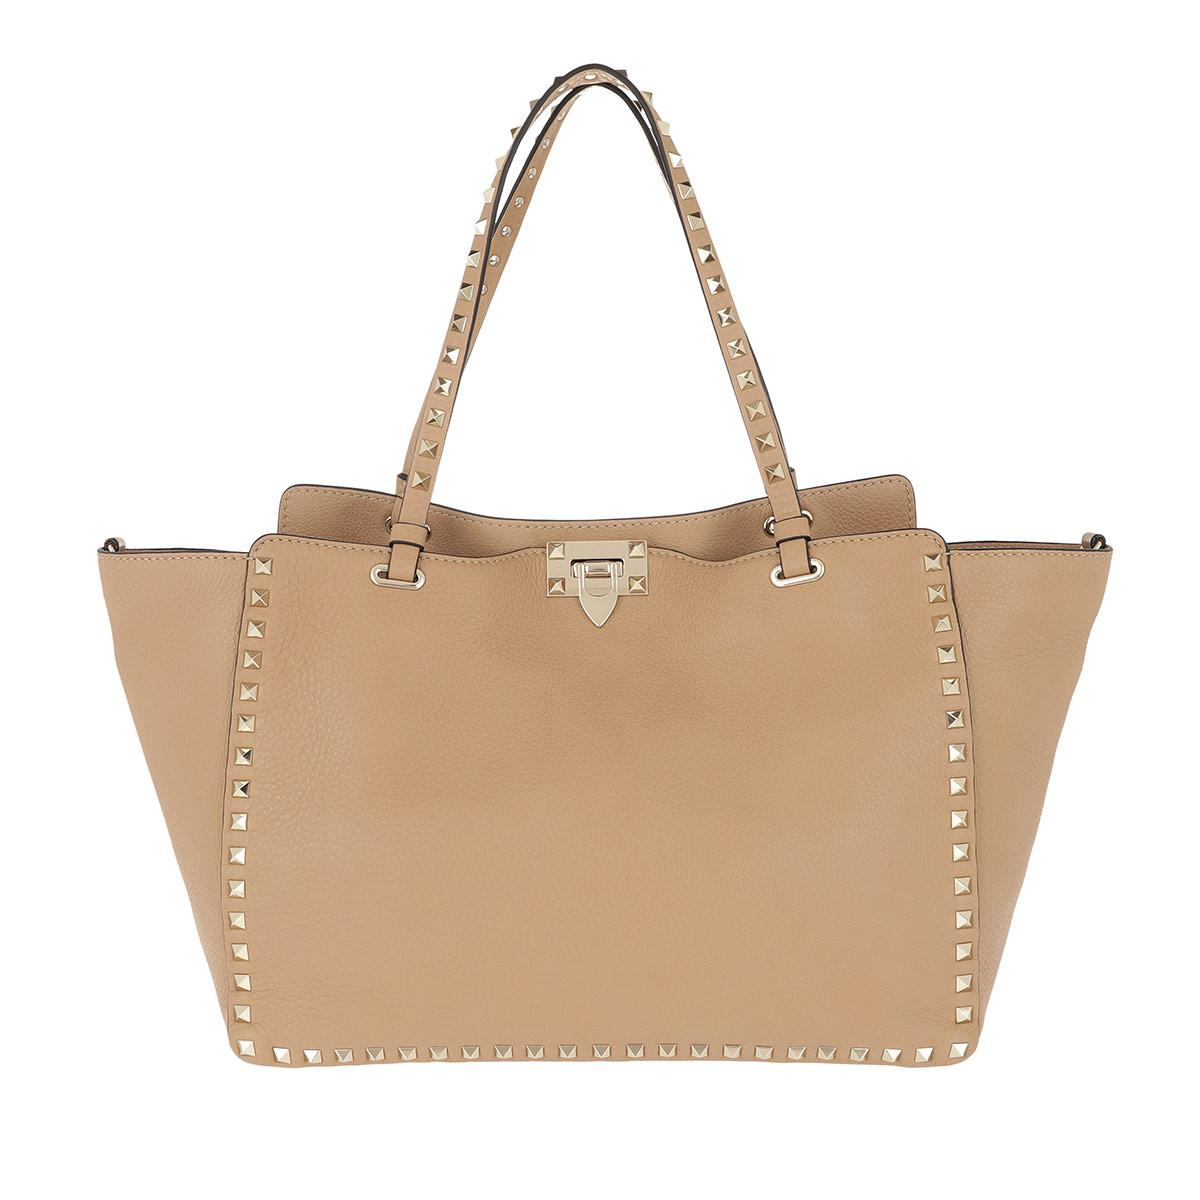 Valentino Rockstud Medium Tote Cammello in Natural - Lyst 0b70f7f881